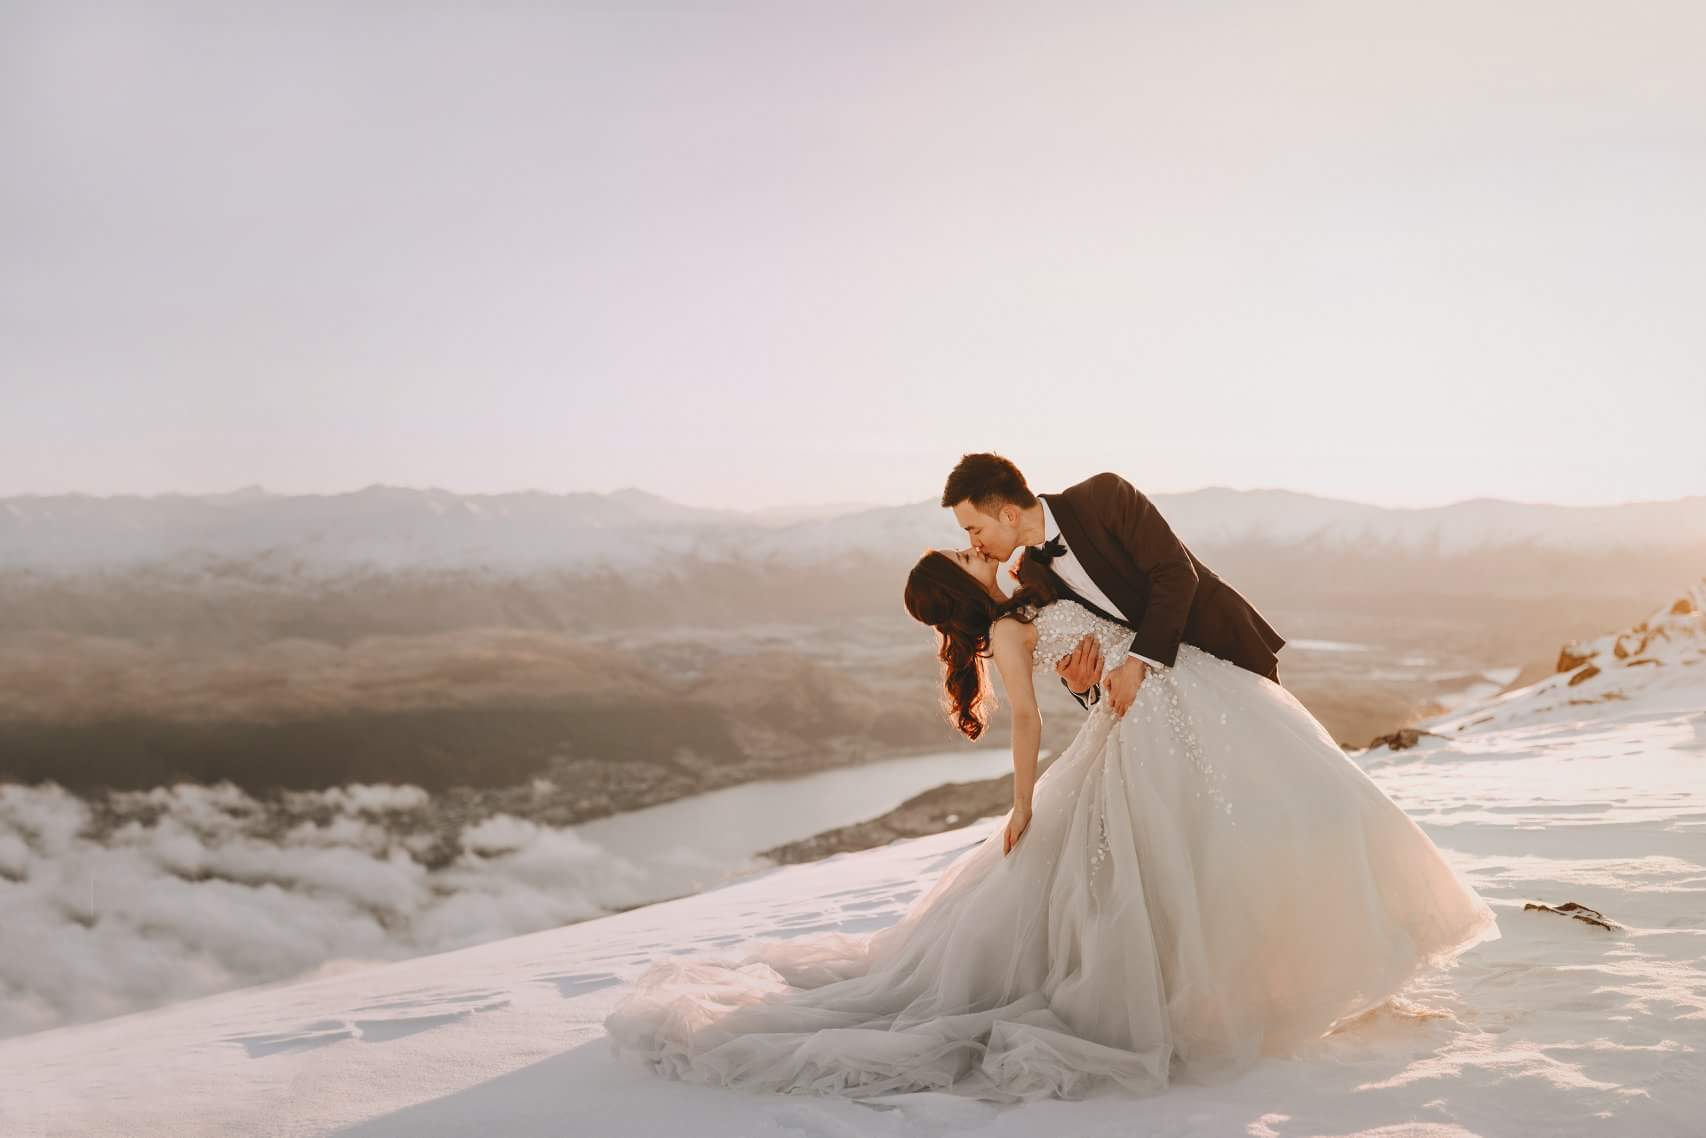 Bride and Groom - Mountain